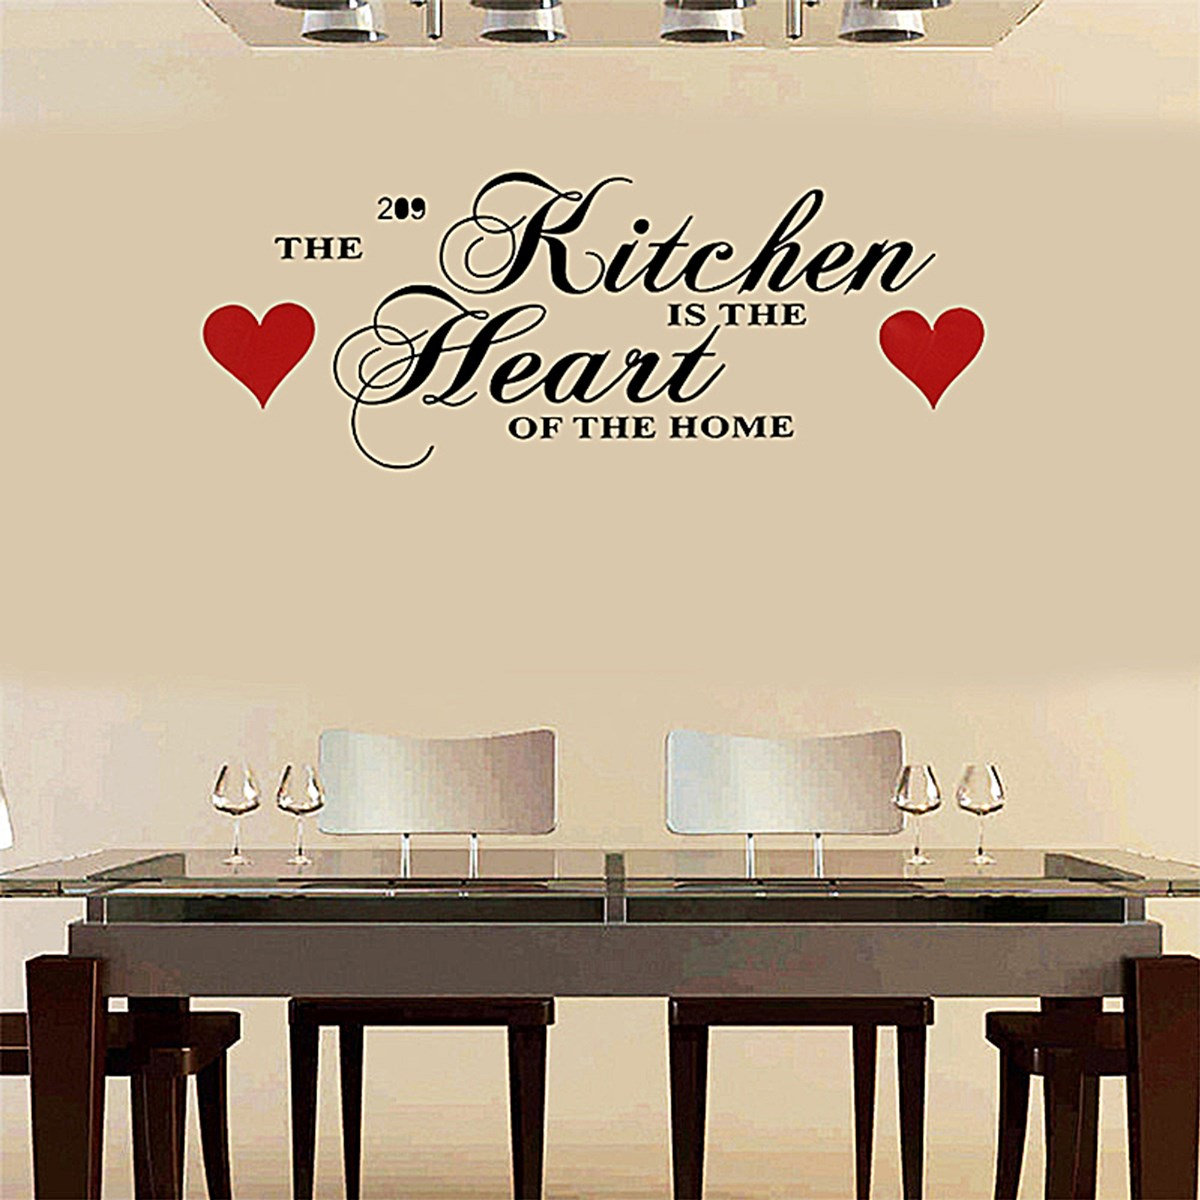 Kitchen Red Heart Wall Sticker Home Quote Decal Decorative Adesivo De Parede Removable Vinyl 60x28cm In Stickers From Garden On